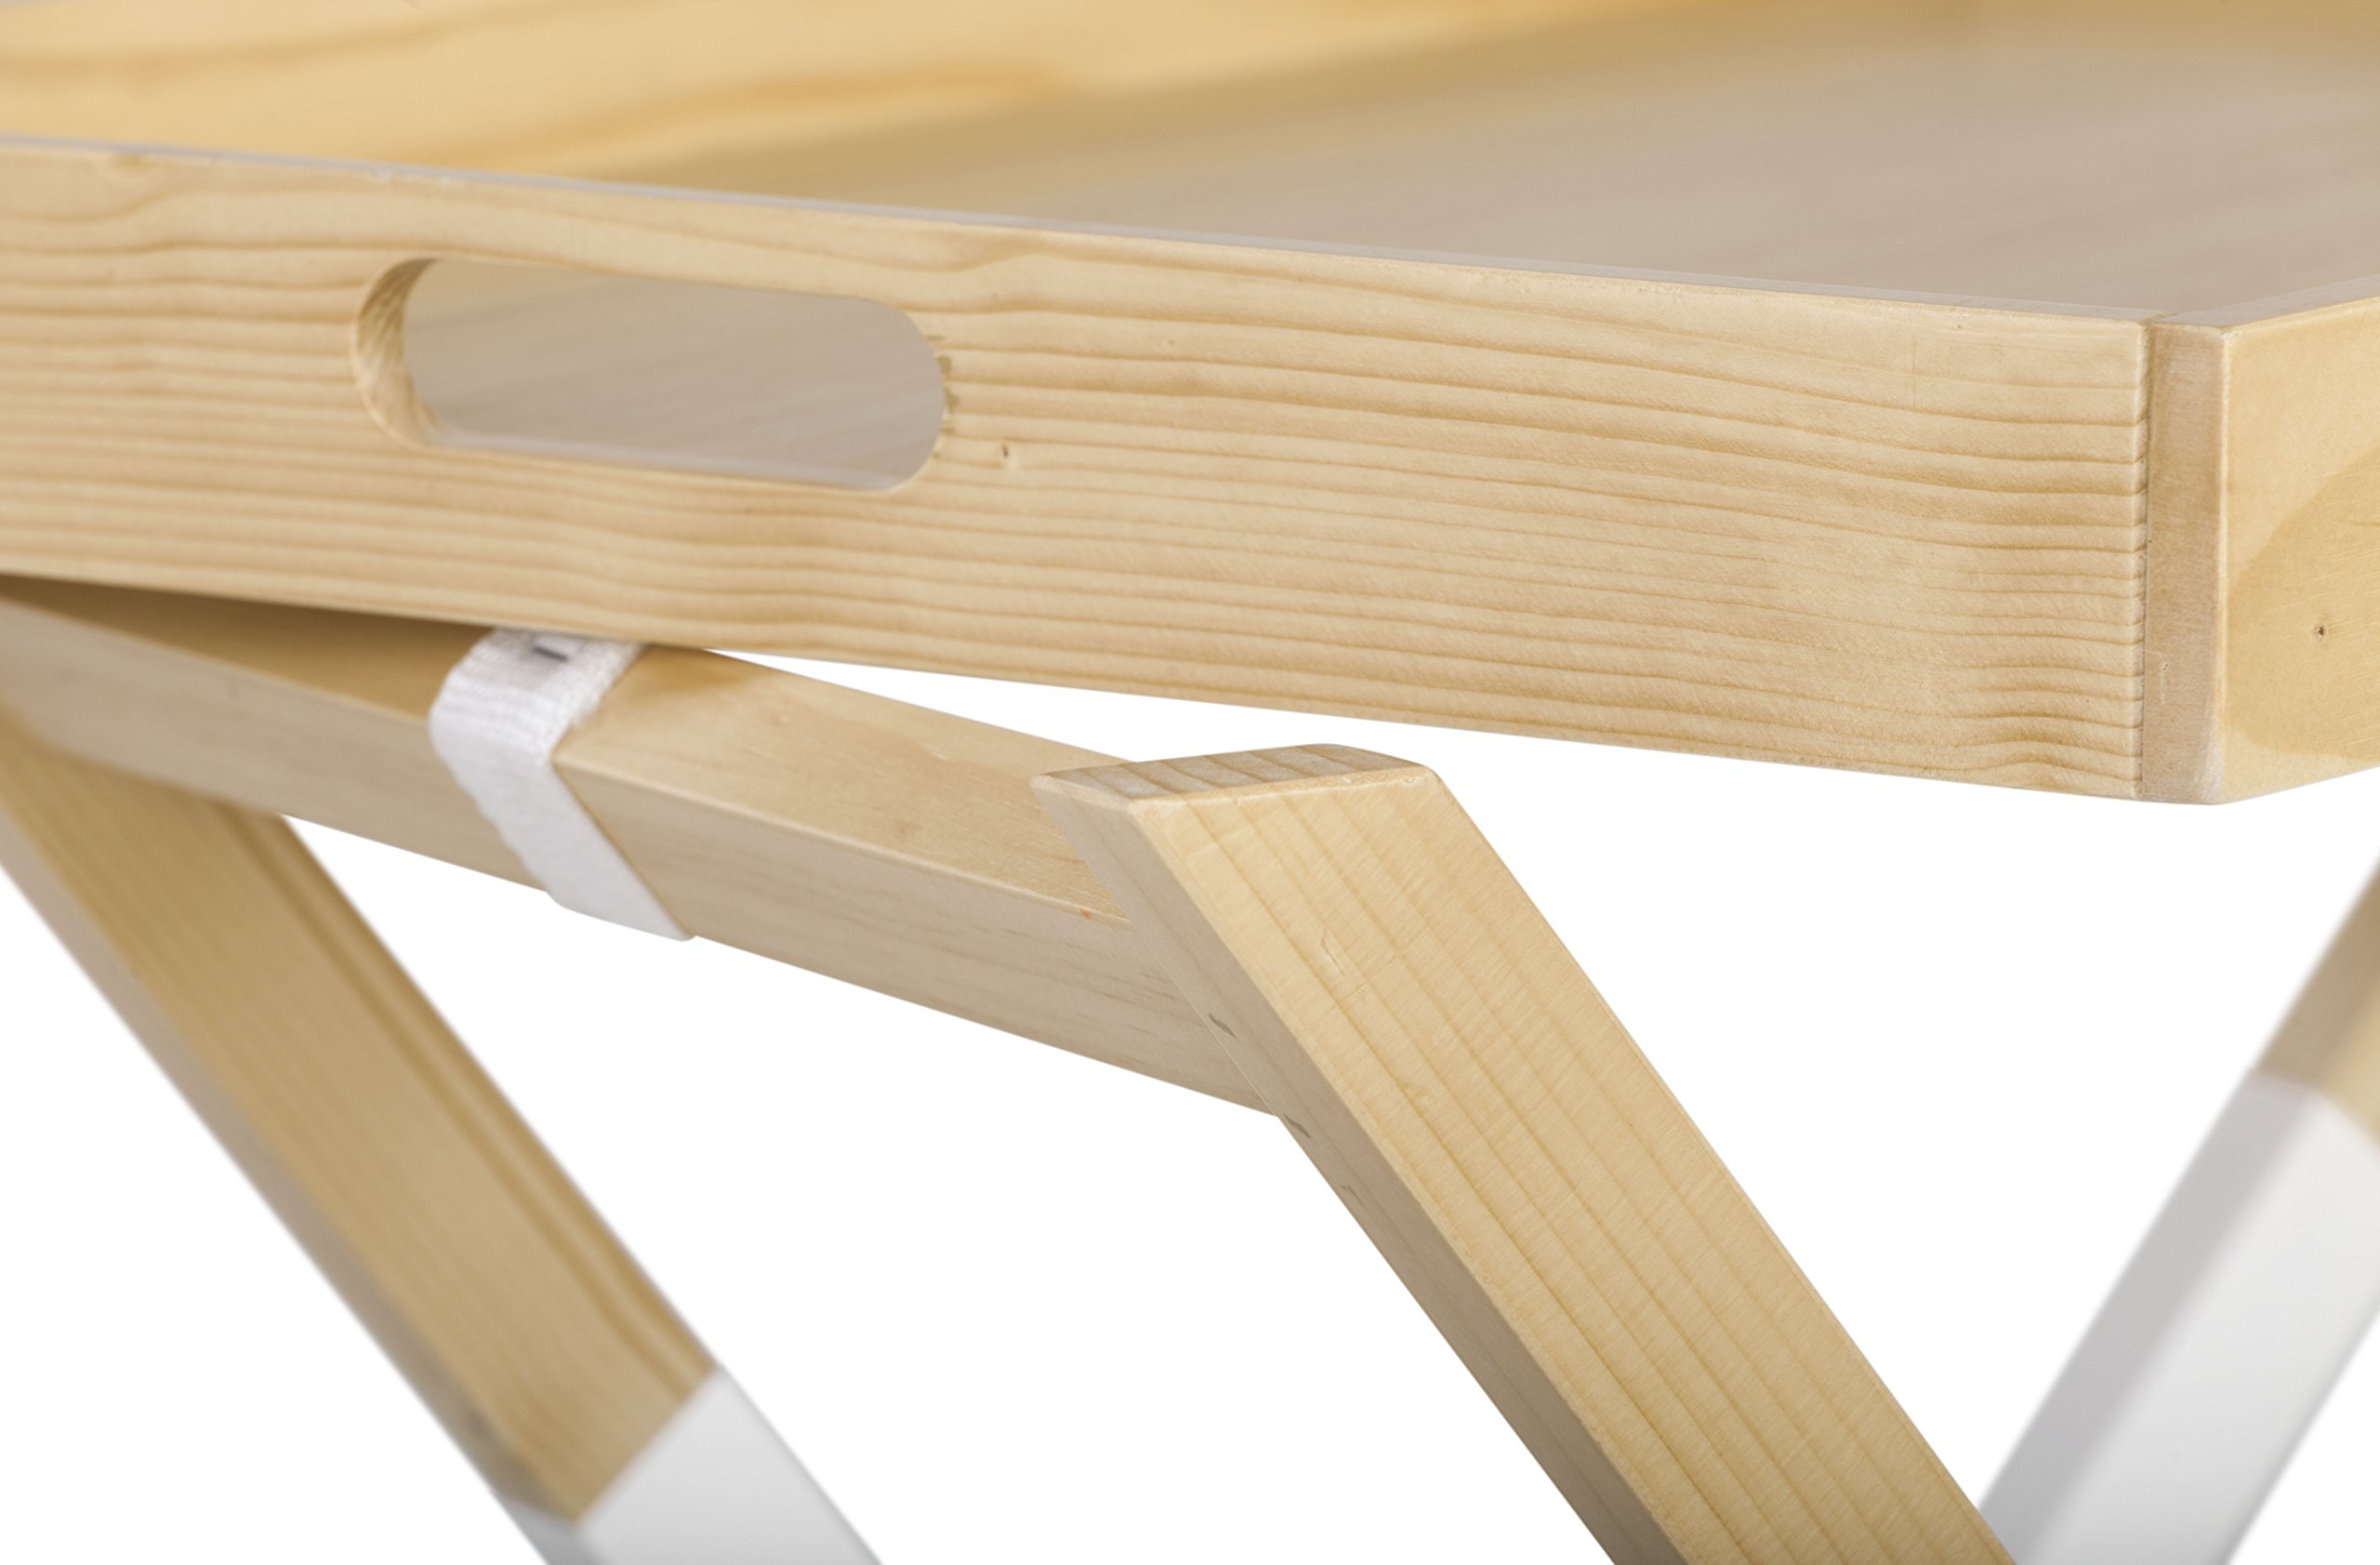 Universal Experts FUST10026A Remus Folding Tray Table, Oak/White by Universal Experts (Image #9)